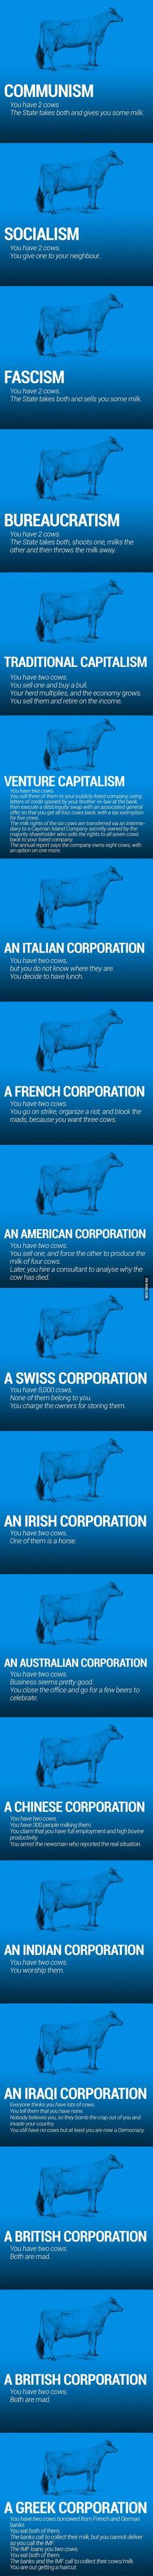 The world economy explained with just two cows